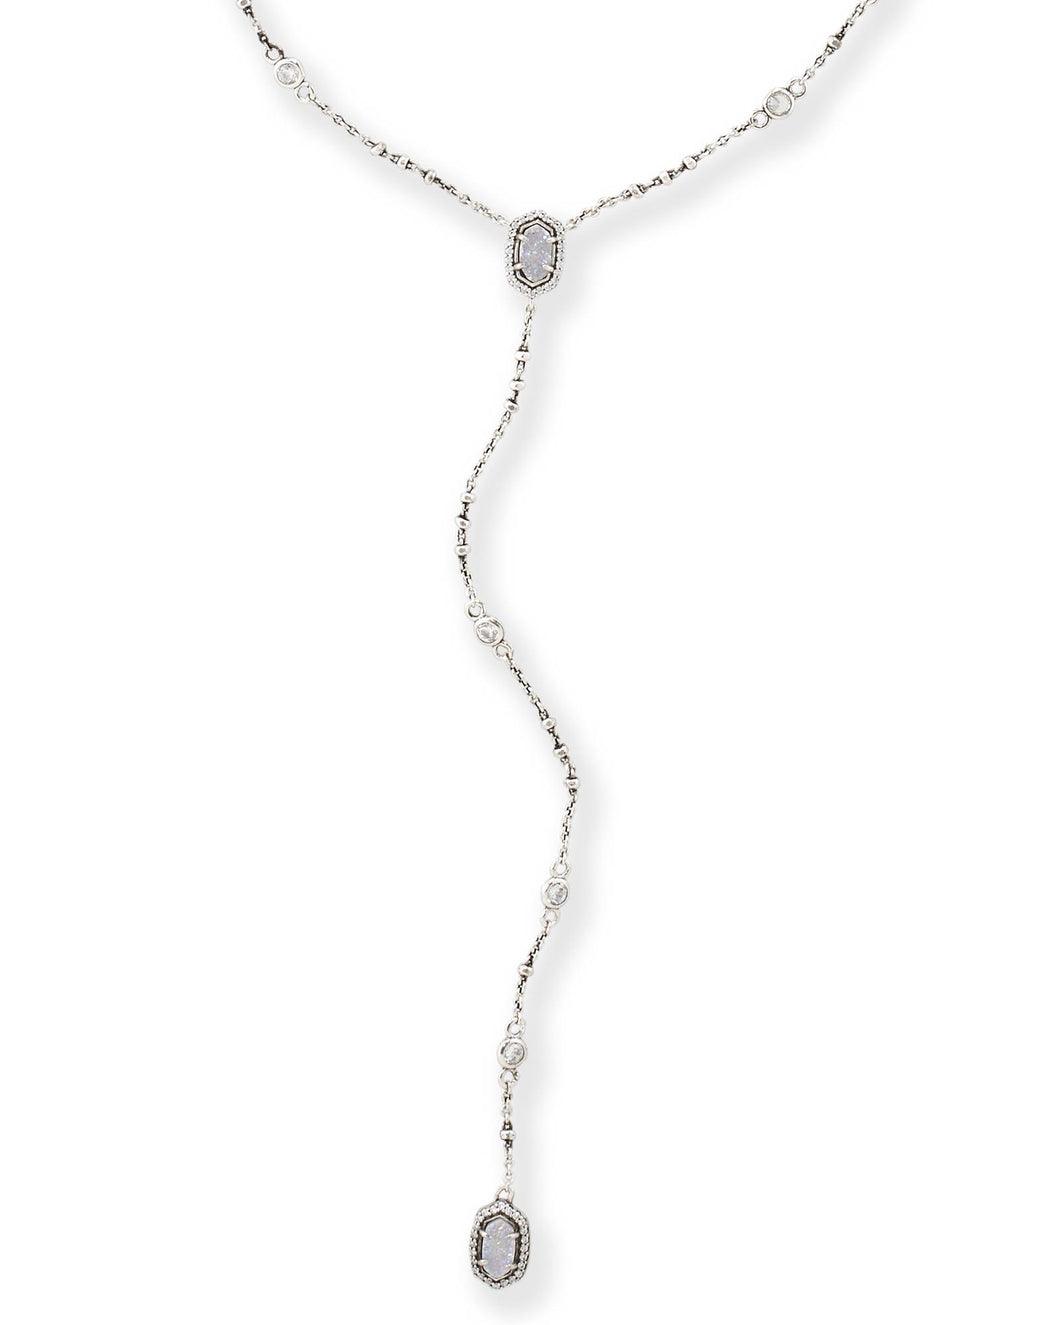 Claudia Antique Silver Lariat Necklace